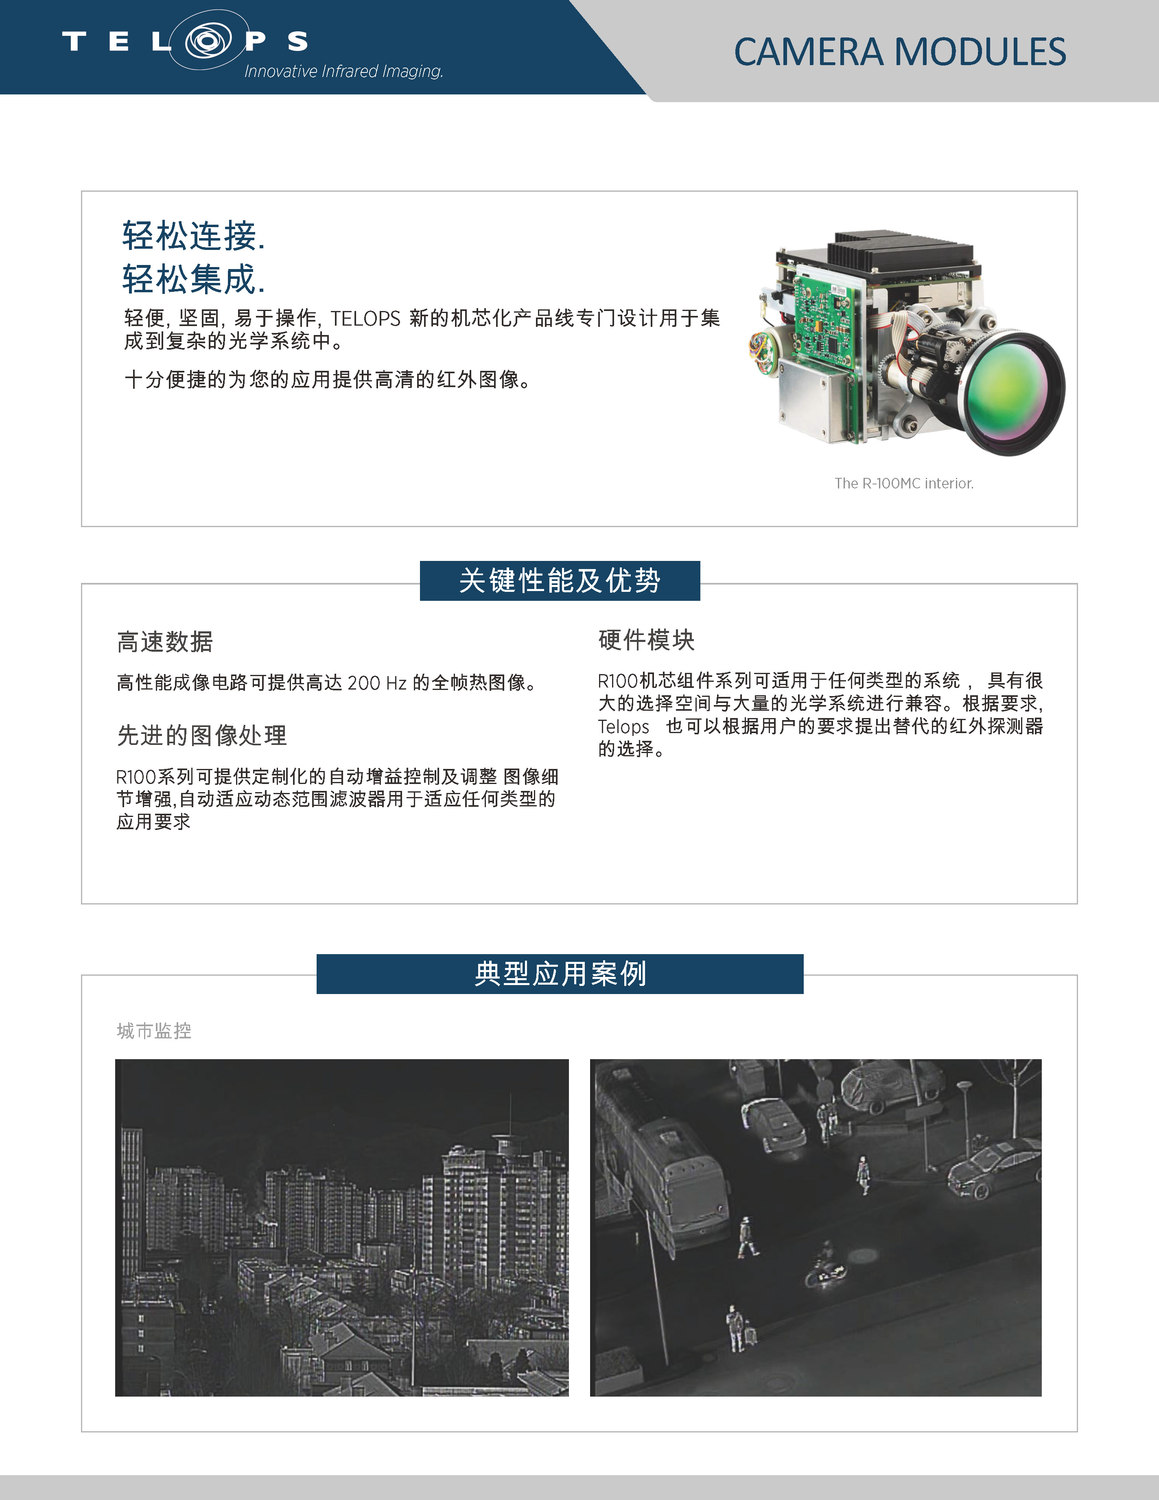 2019 Camera Modules Family - CHINA_页面_1.jpg